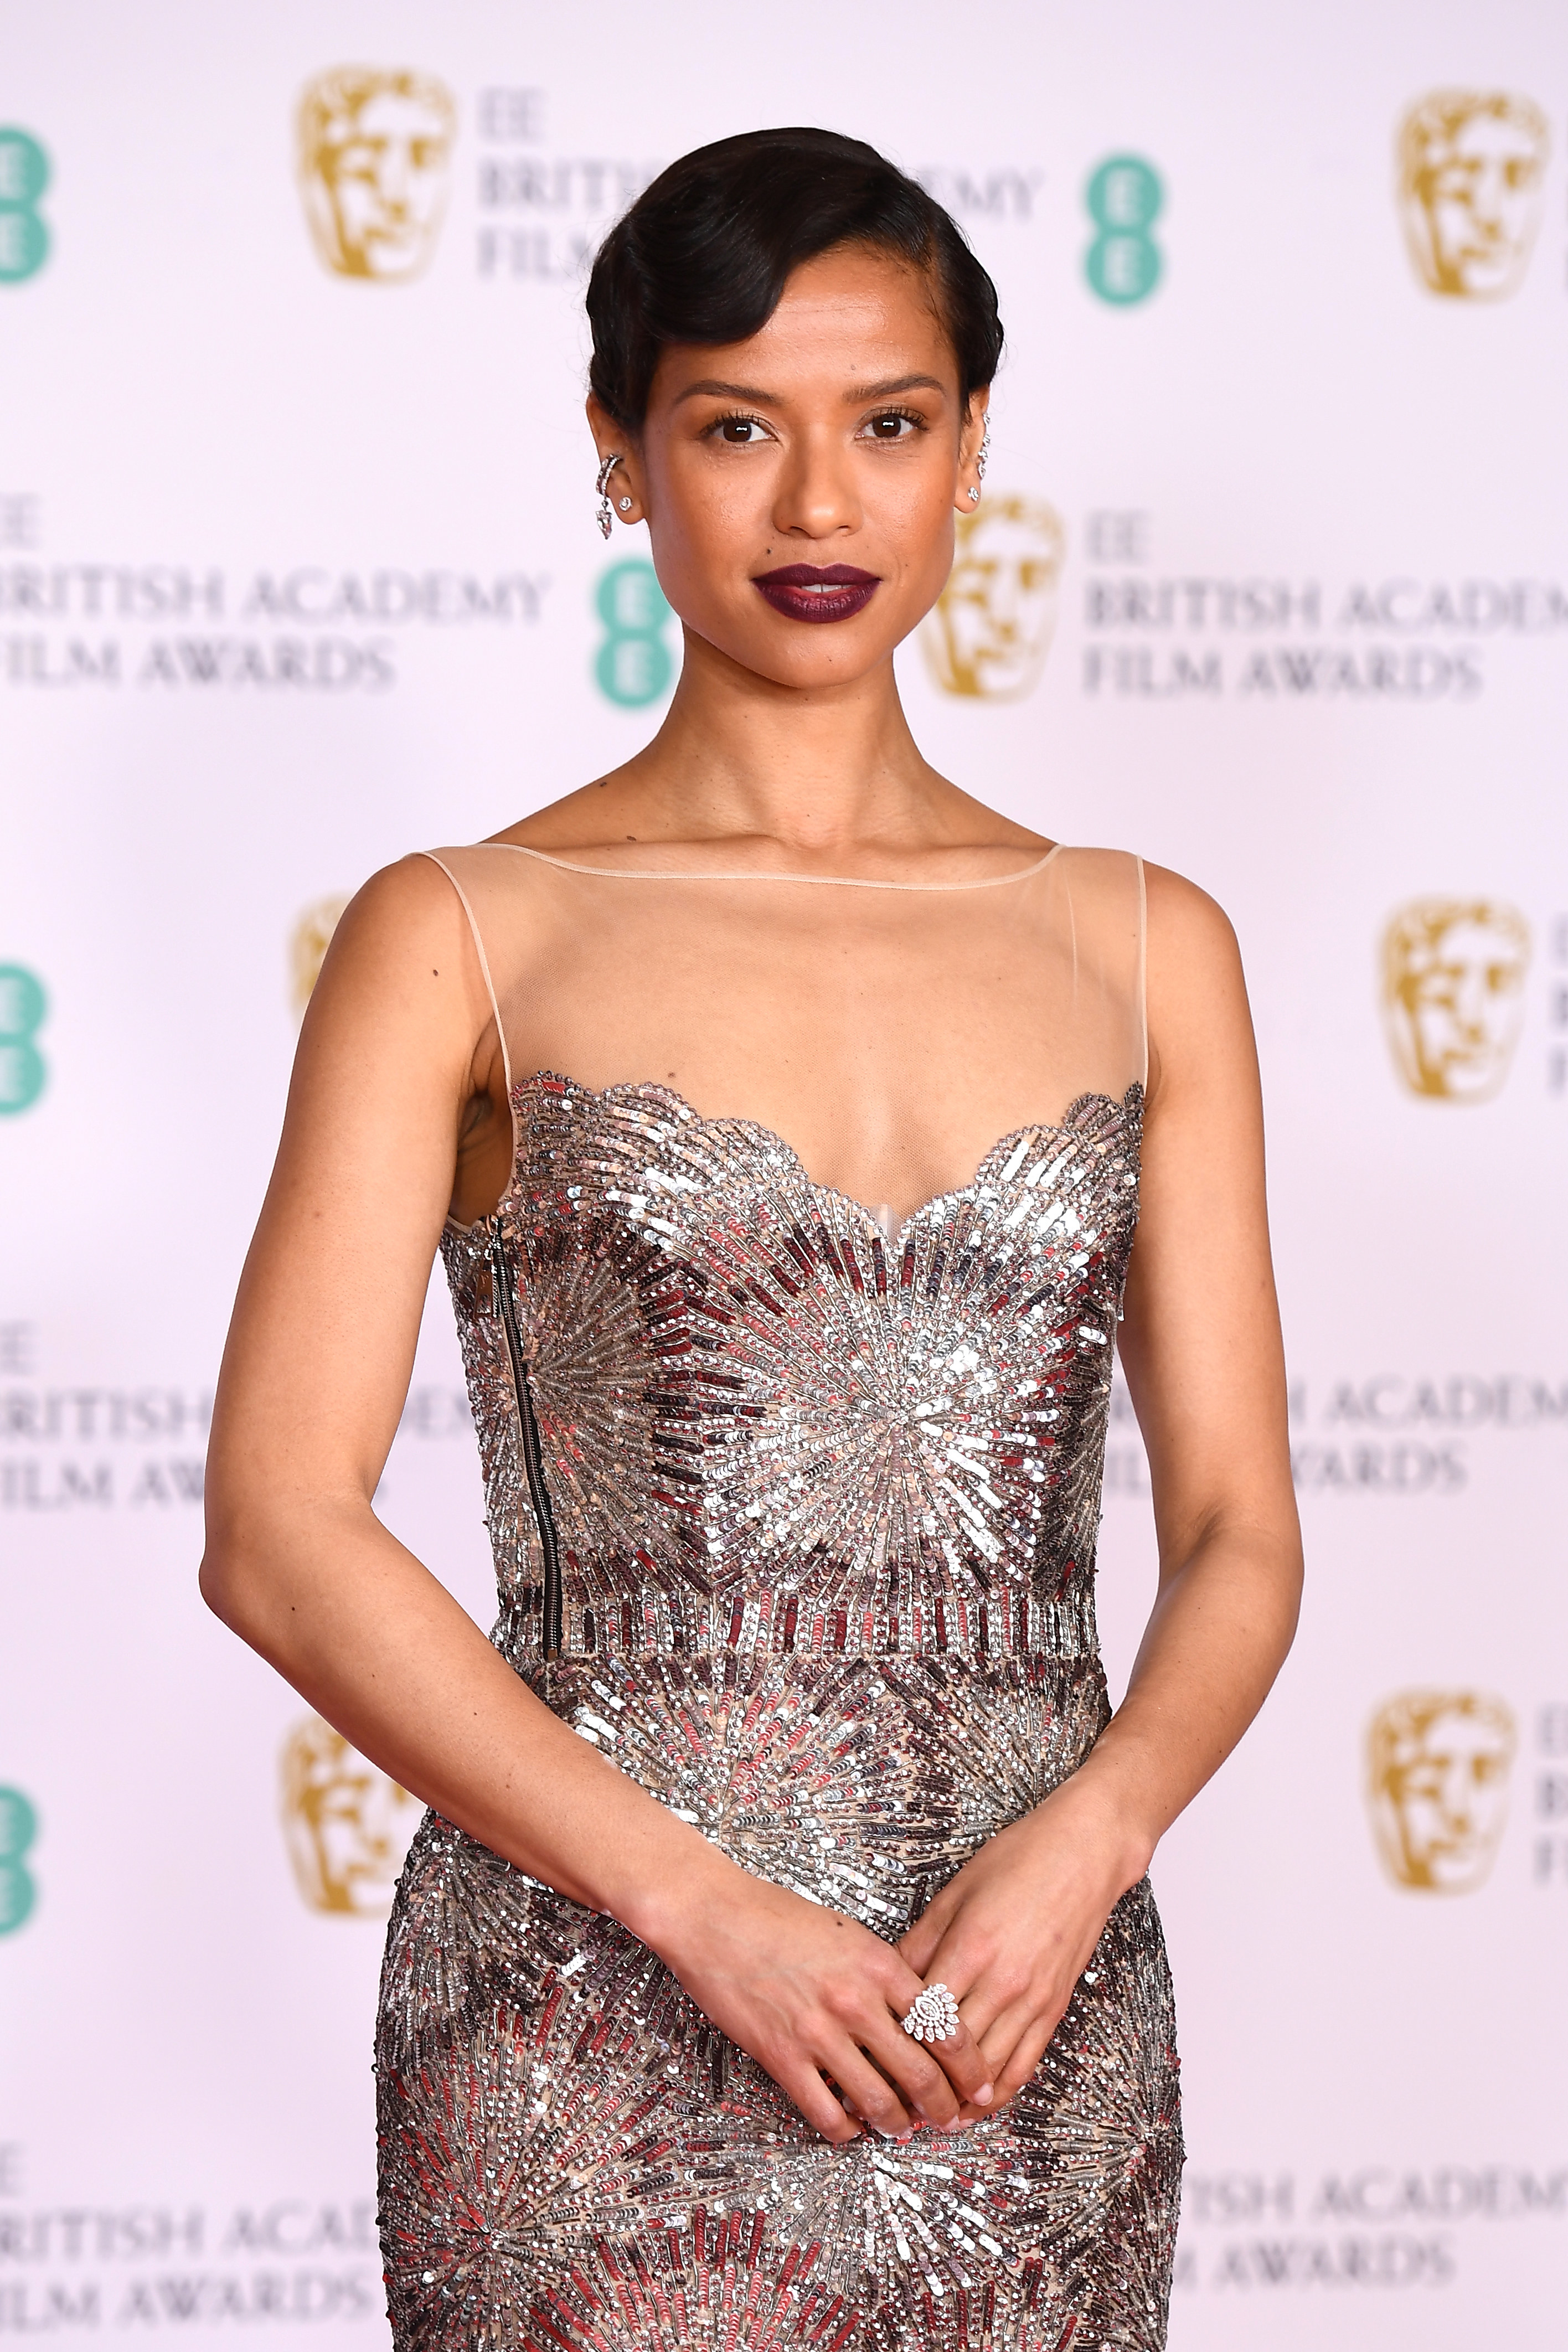 Gugu on the BAFTA red carpet in a sequined gown